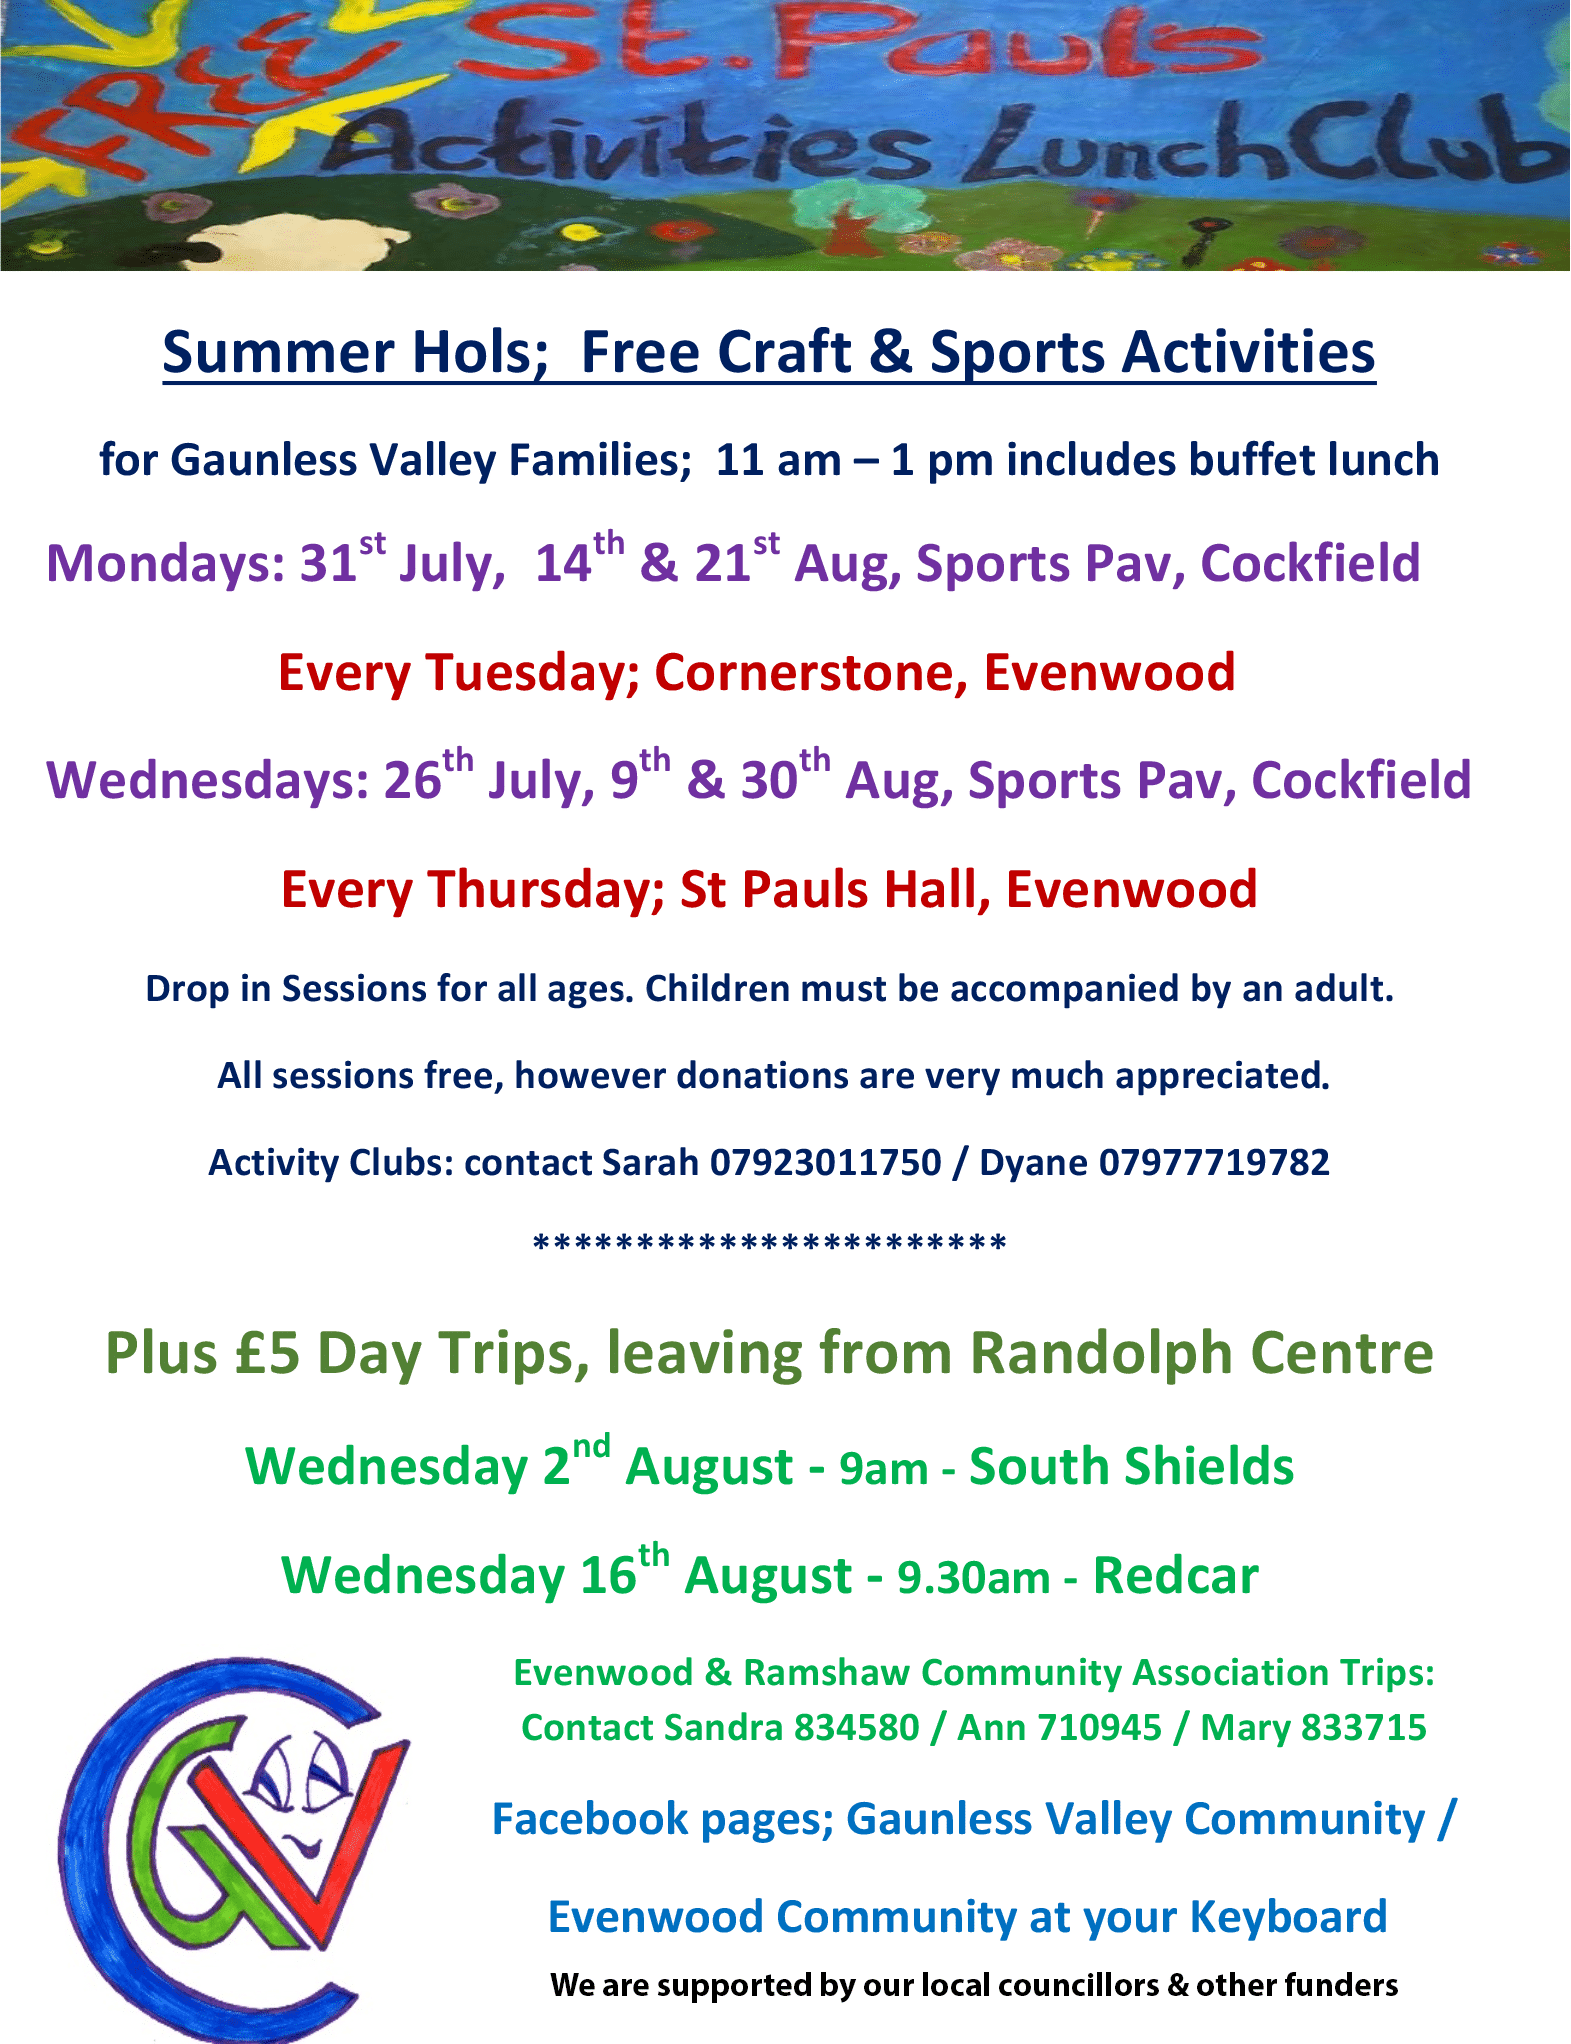 Summer Activities for Cockfield and Evenwood